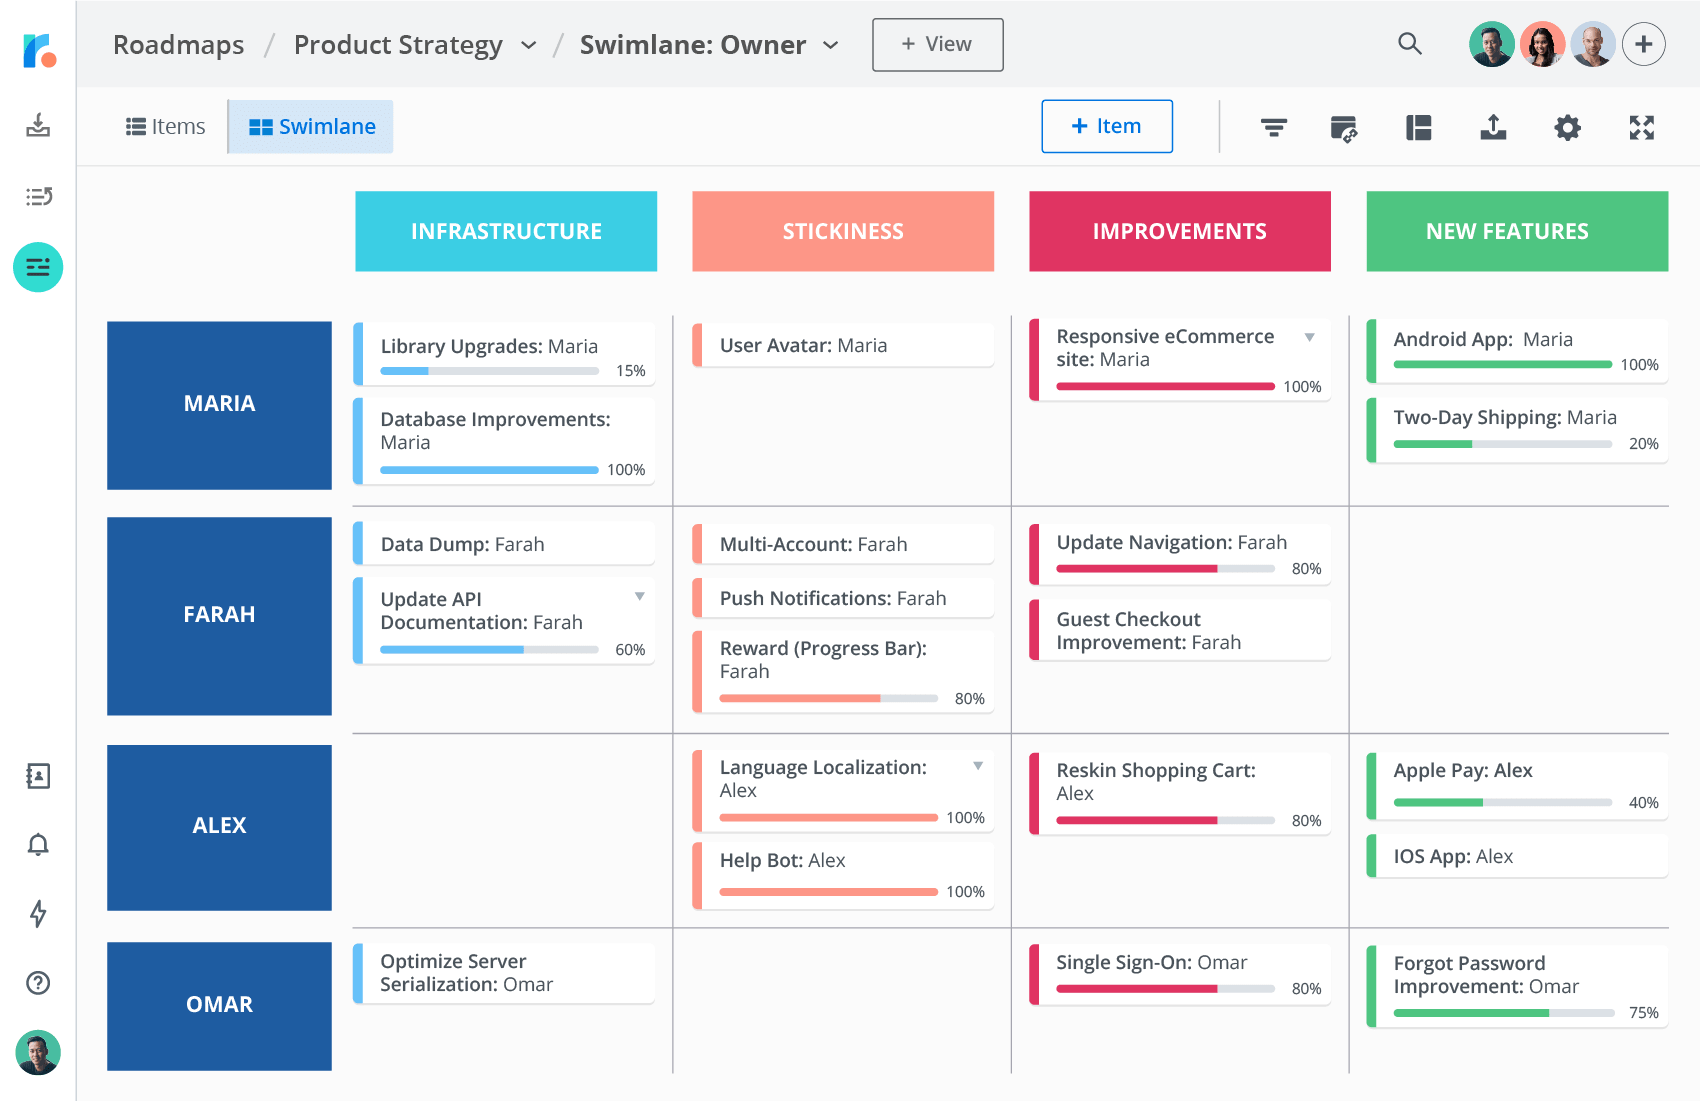 Product strategy swimlane roadmap displayed by owner